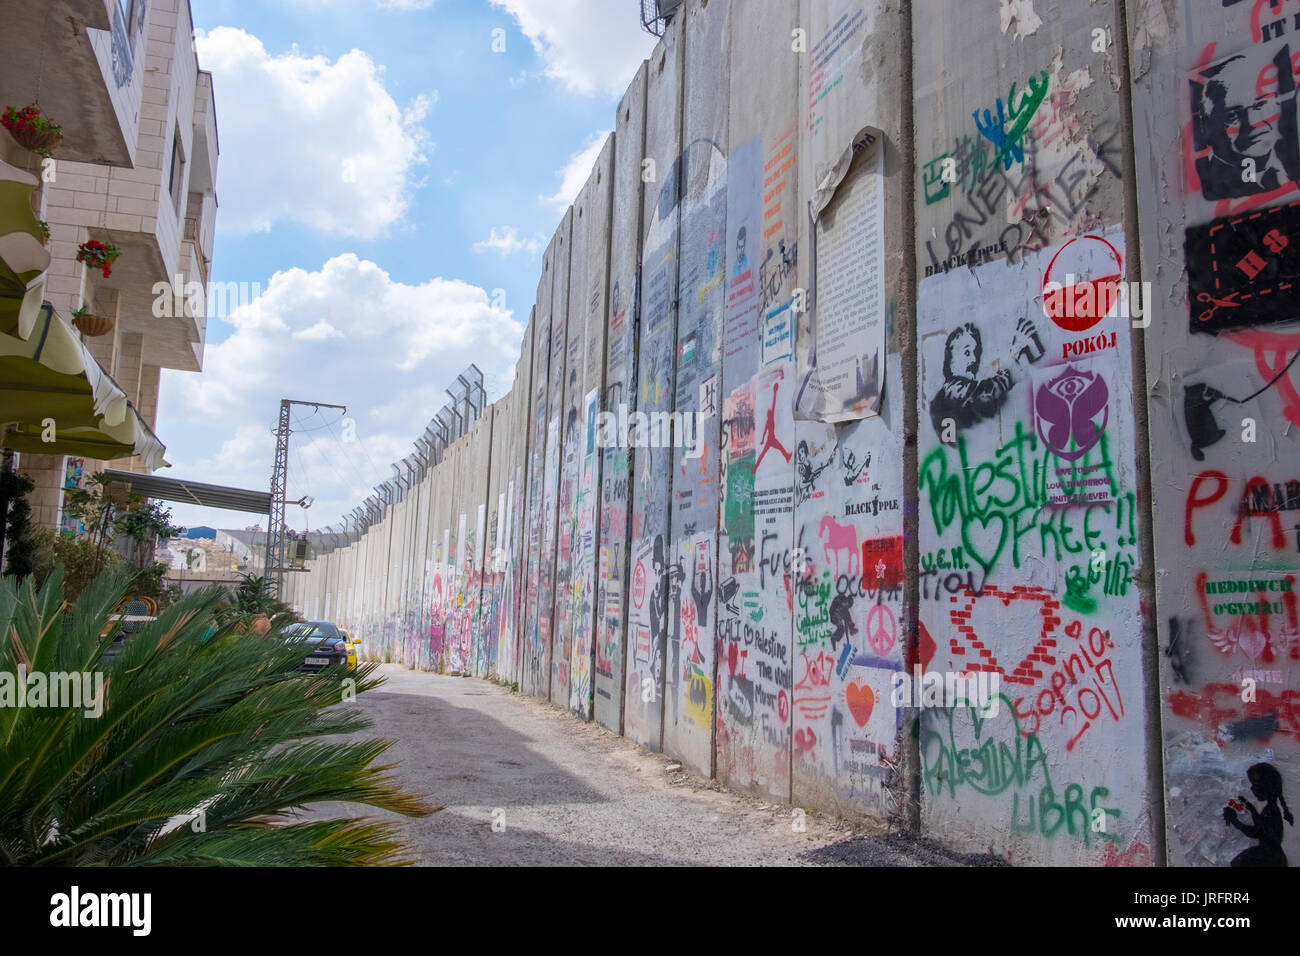 The grafitti filled wall separating Palestine from Israel as it divides the city of Bethlehem in the Occupied Territories of the West Bank - Stock Image